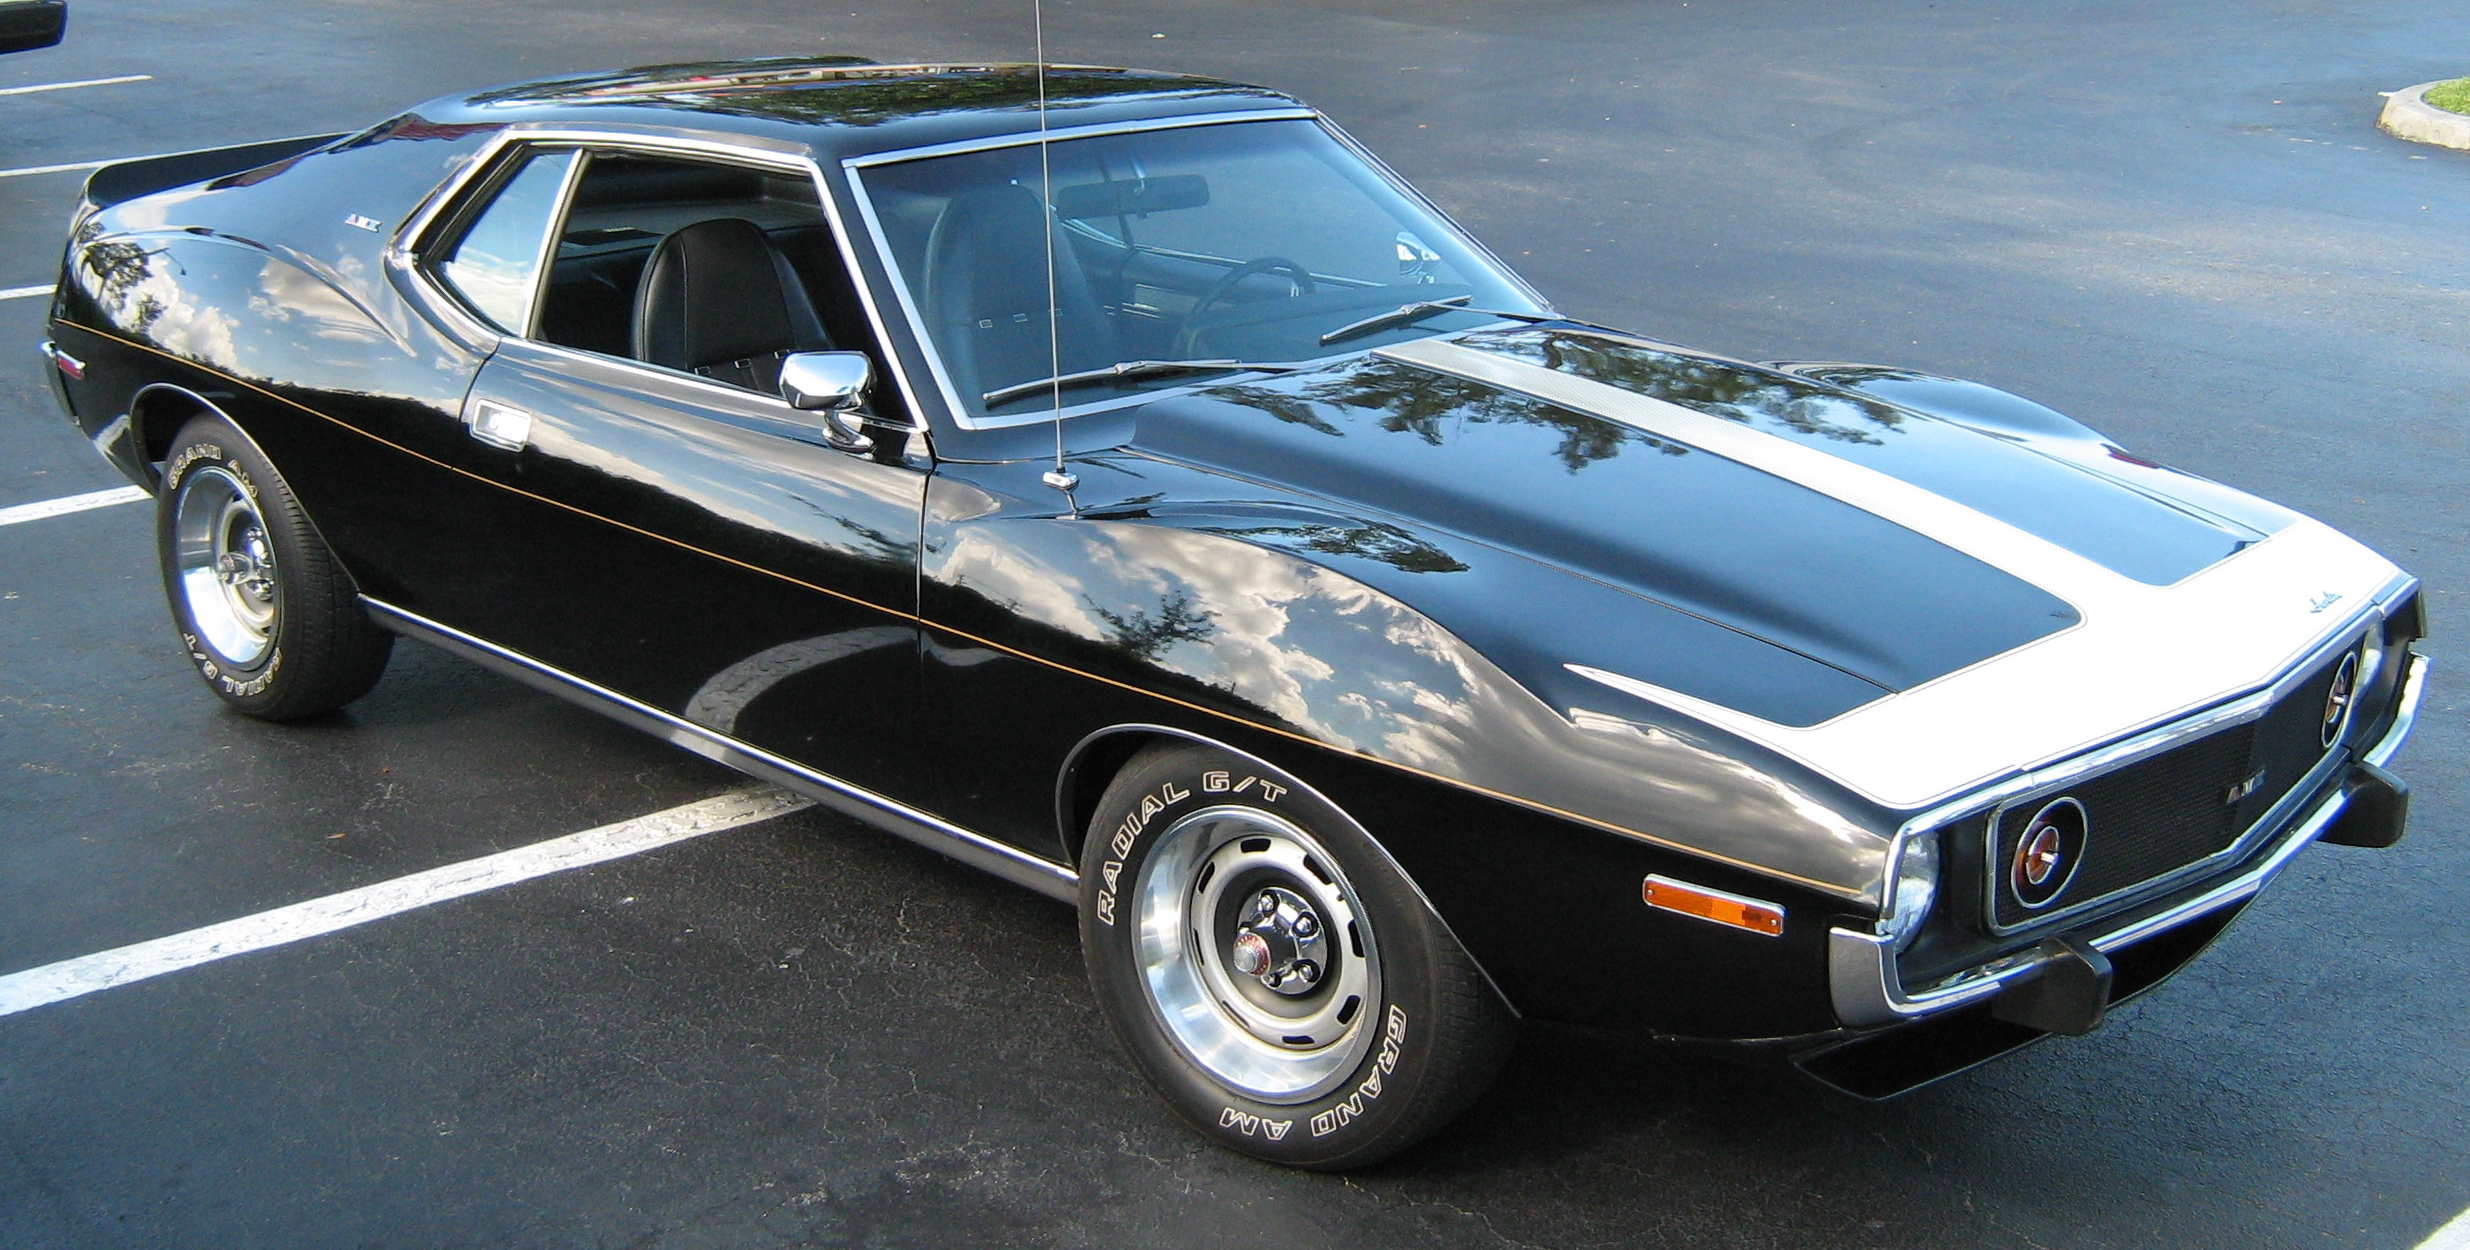 Chrysler 73 barracuda